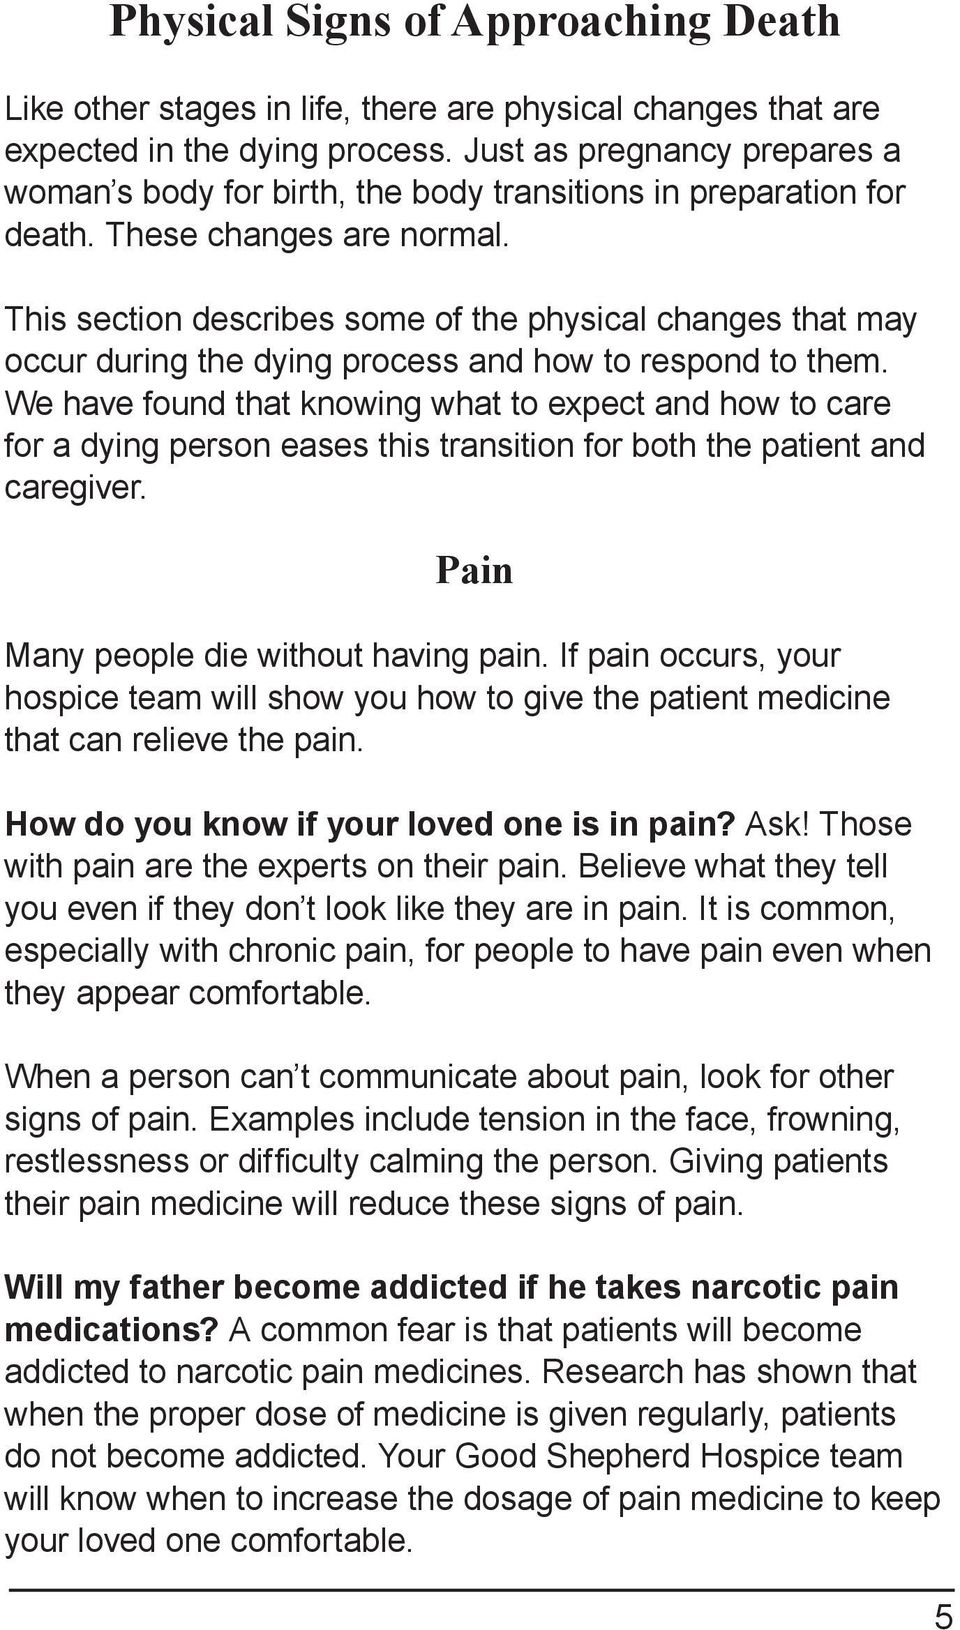 This section describes some of the physical changes that may occur during the dying process and how to respond to them.